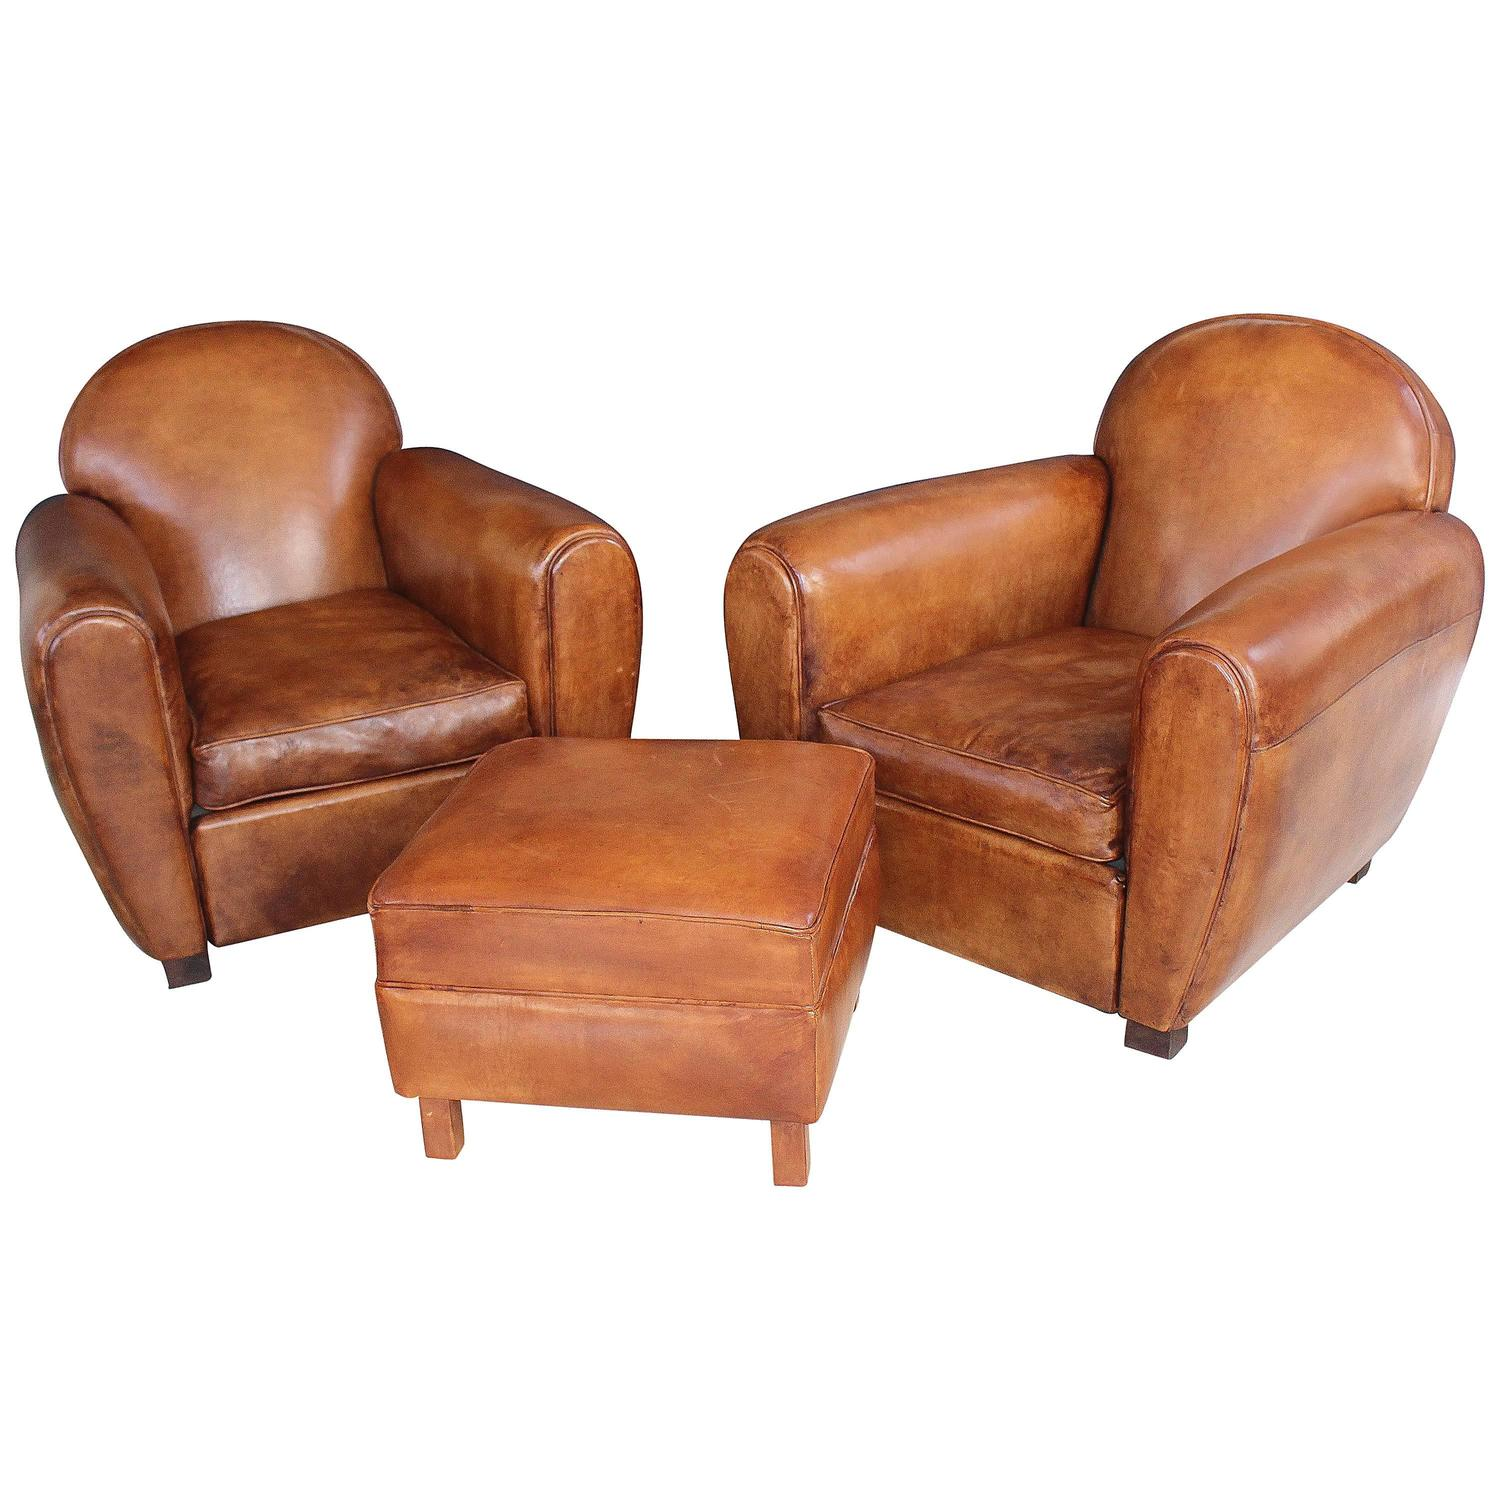 Pair of New French Leather Club Chairs with Ottoman at 1stdibs